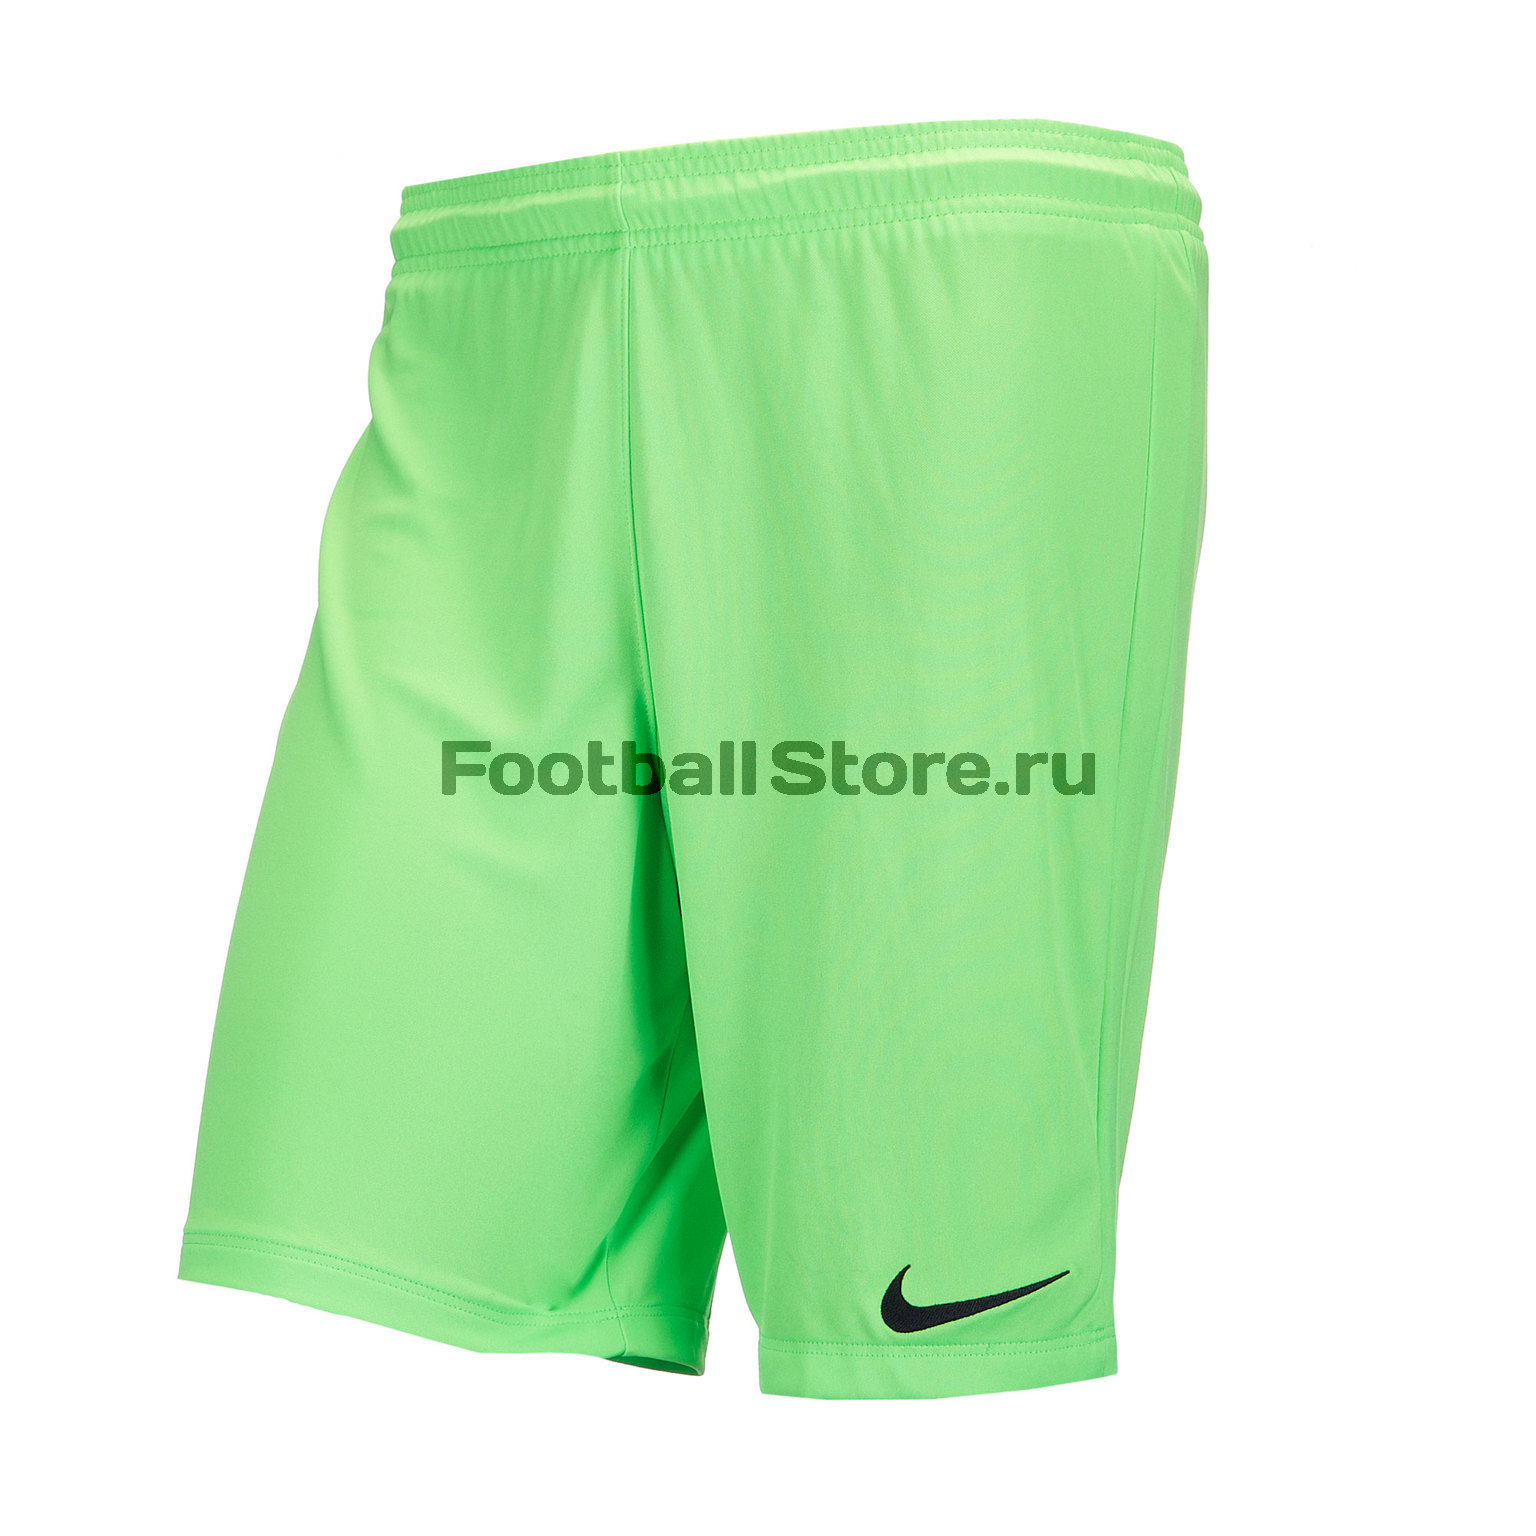 Игровые шорты Nike League Knit Short NB 725881-398